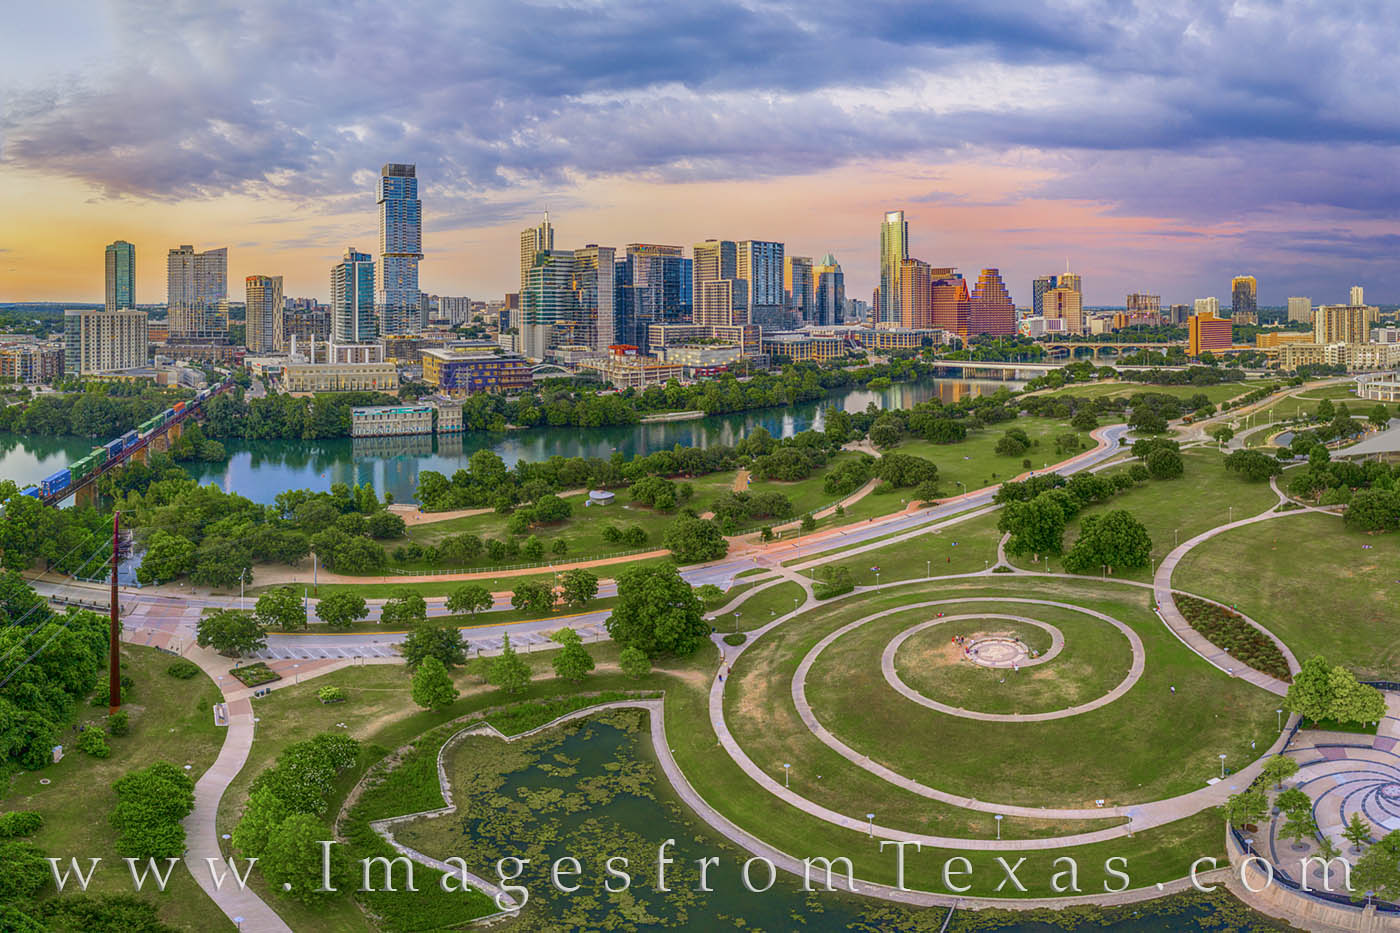 From about 200' above Lady Bird Lake and  Zilker Park, this view offers an amazing landscape of the downtown Austin area. A...